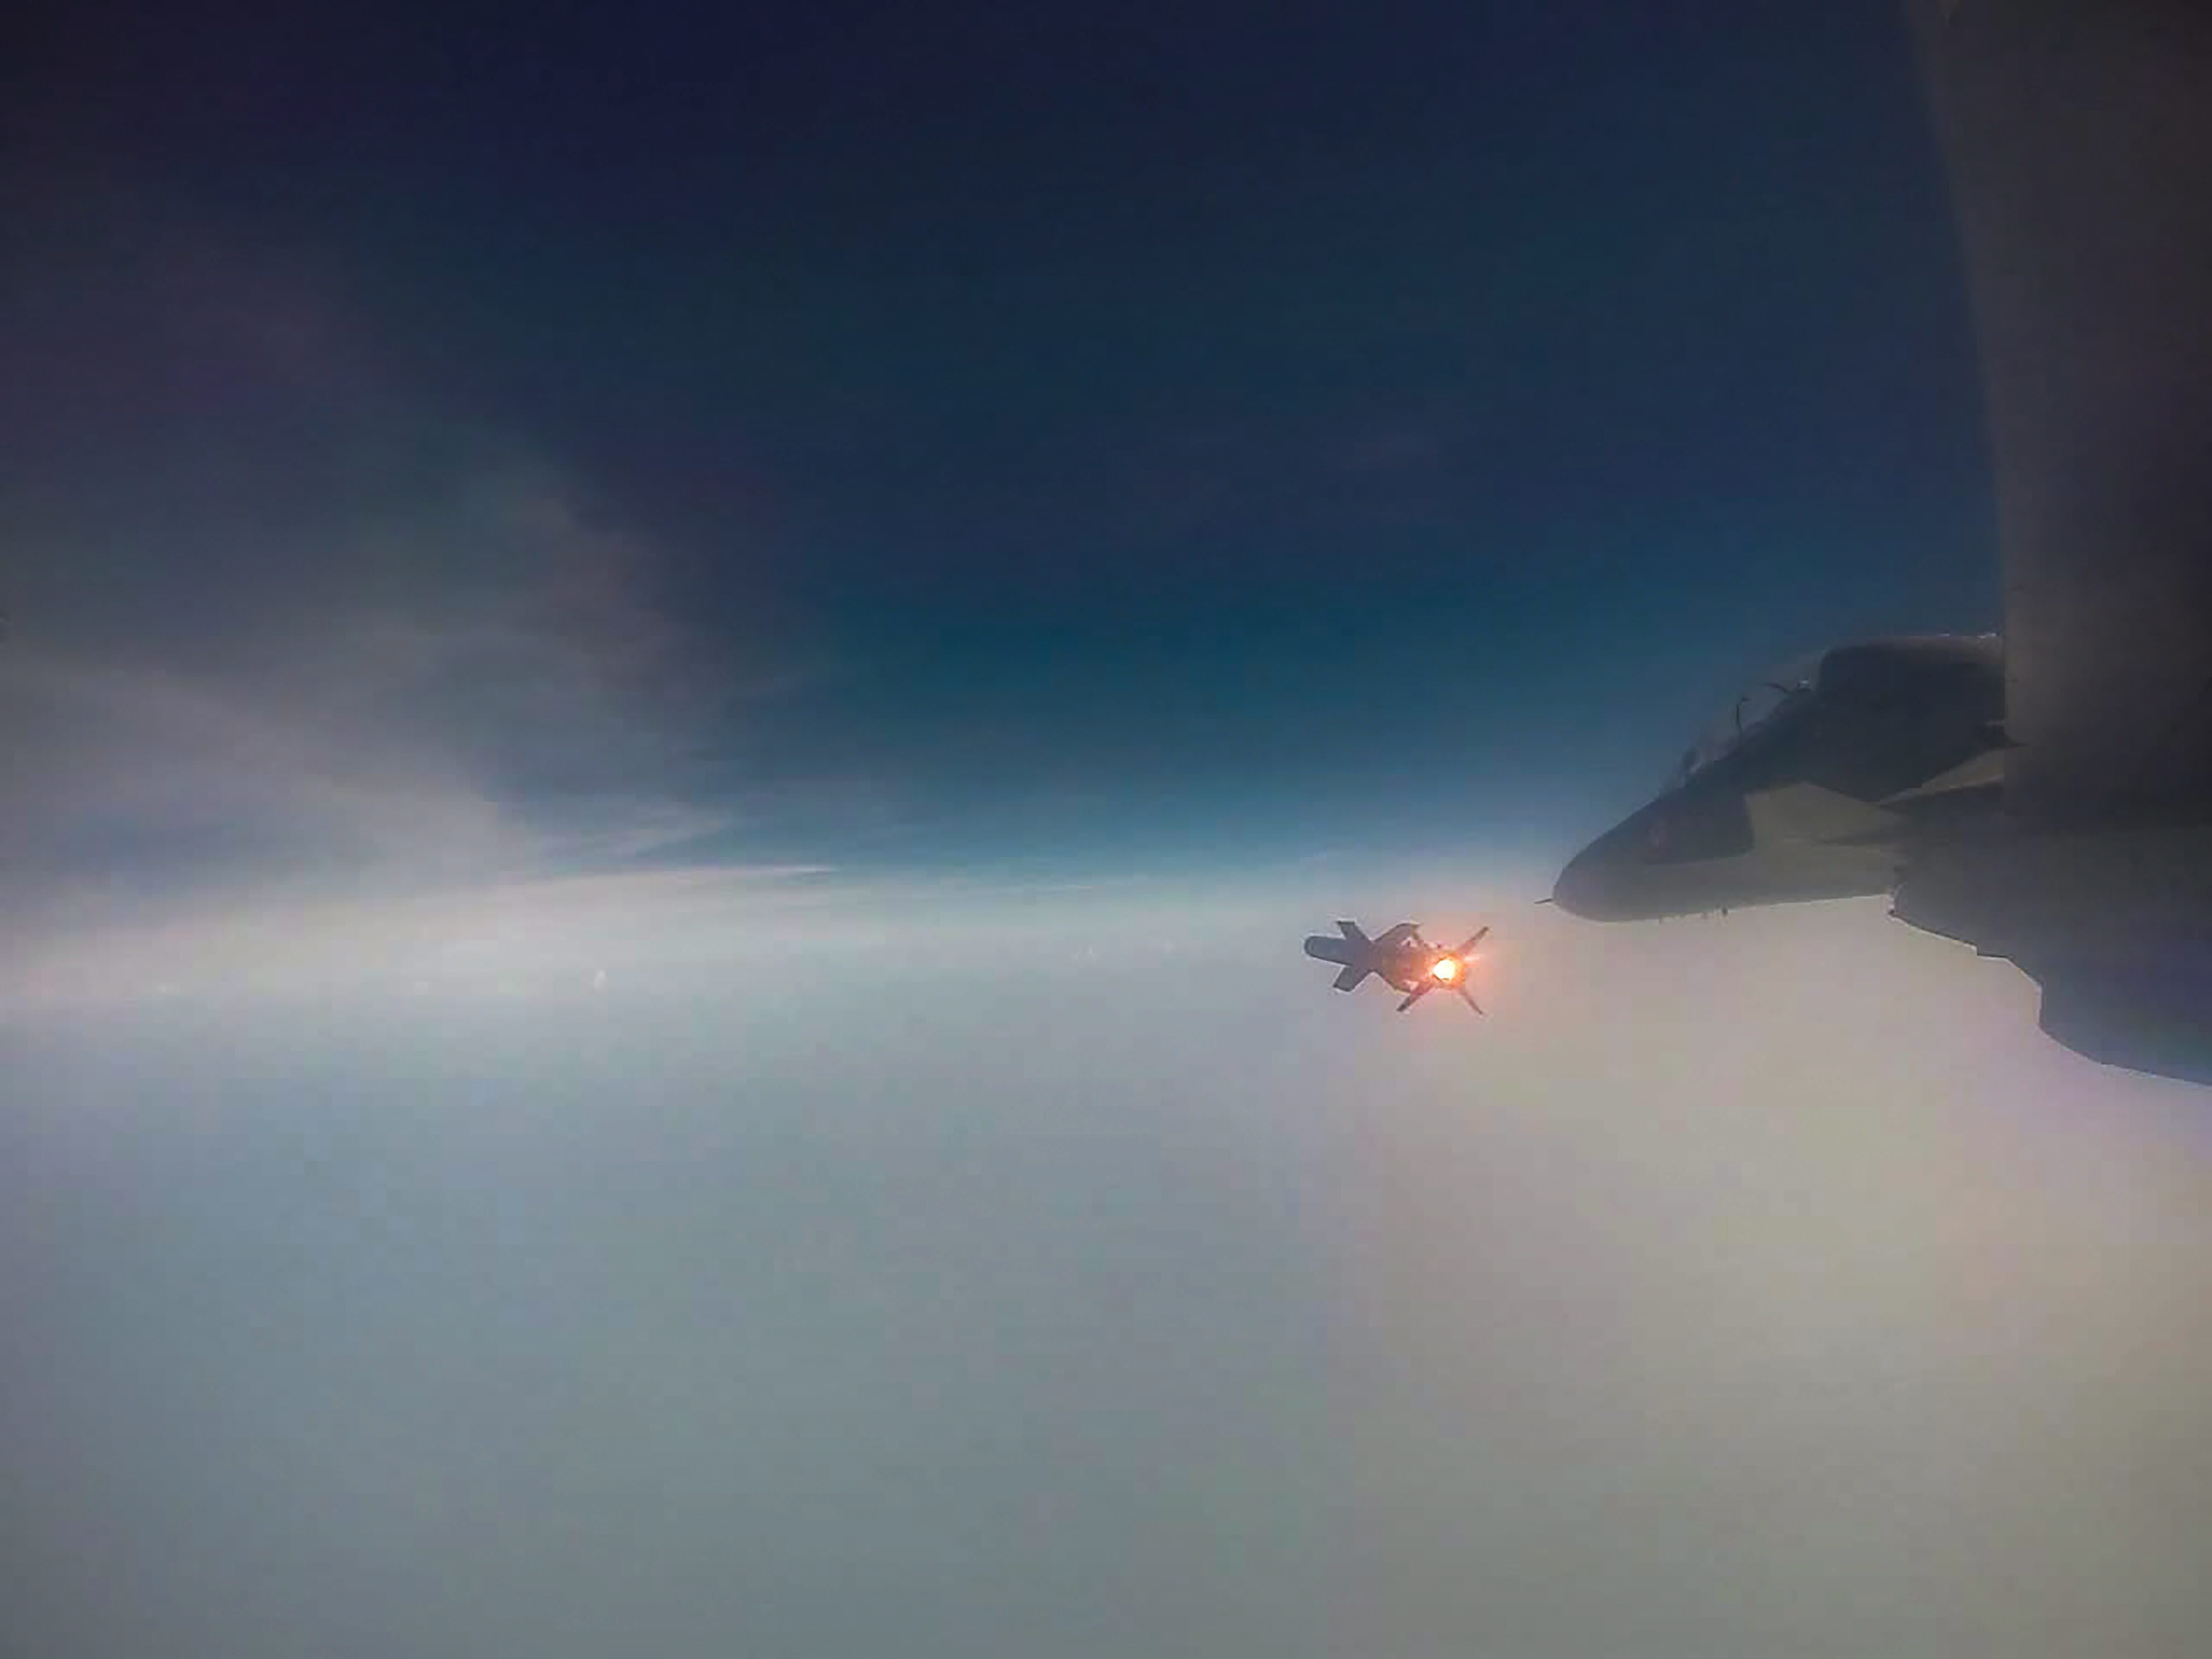 Astra, the indigenously developed Beyond Visual Range Air-to-Air Missile (BVRAAM), during its successful test firing by the Indian Air Force from Su-30 aircraft, from Air Force Station, Kalaikunda - PTI